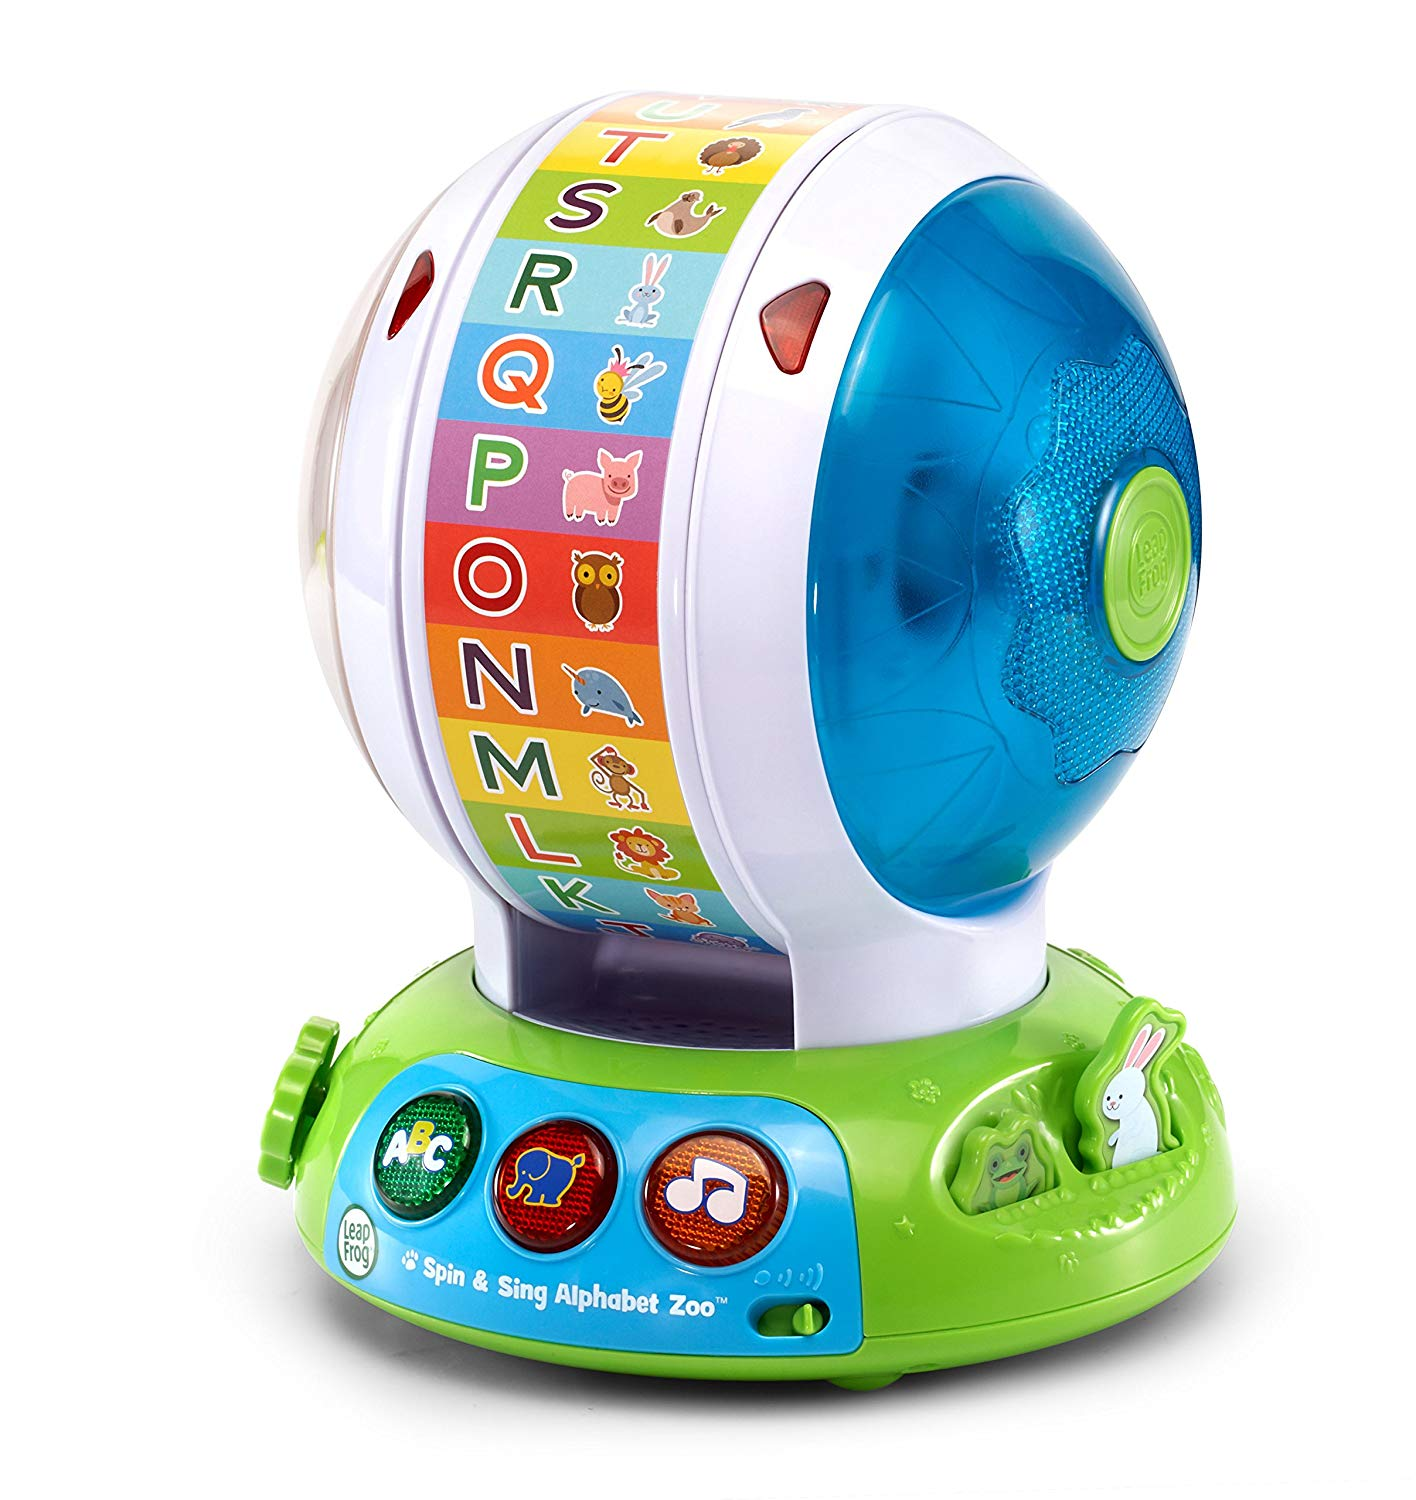 LeapFrog Spin and Sing Alphabet Zoo review